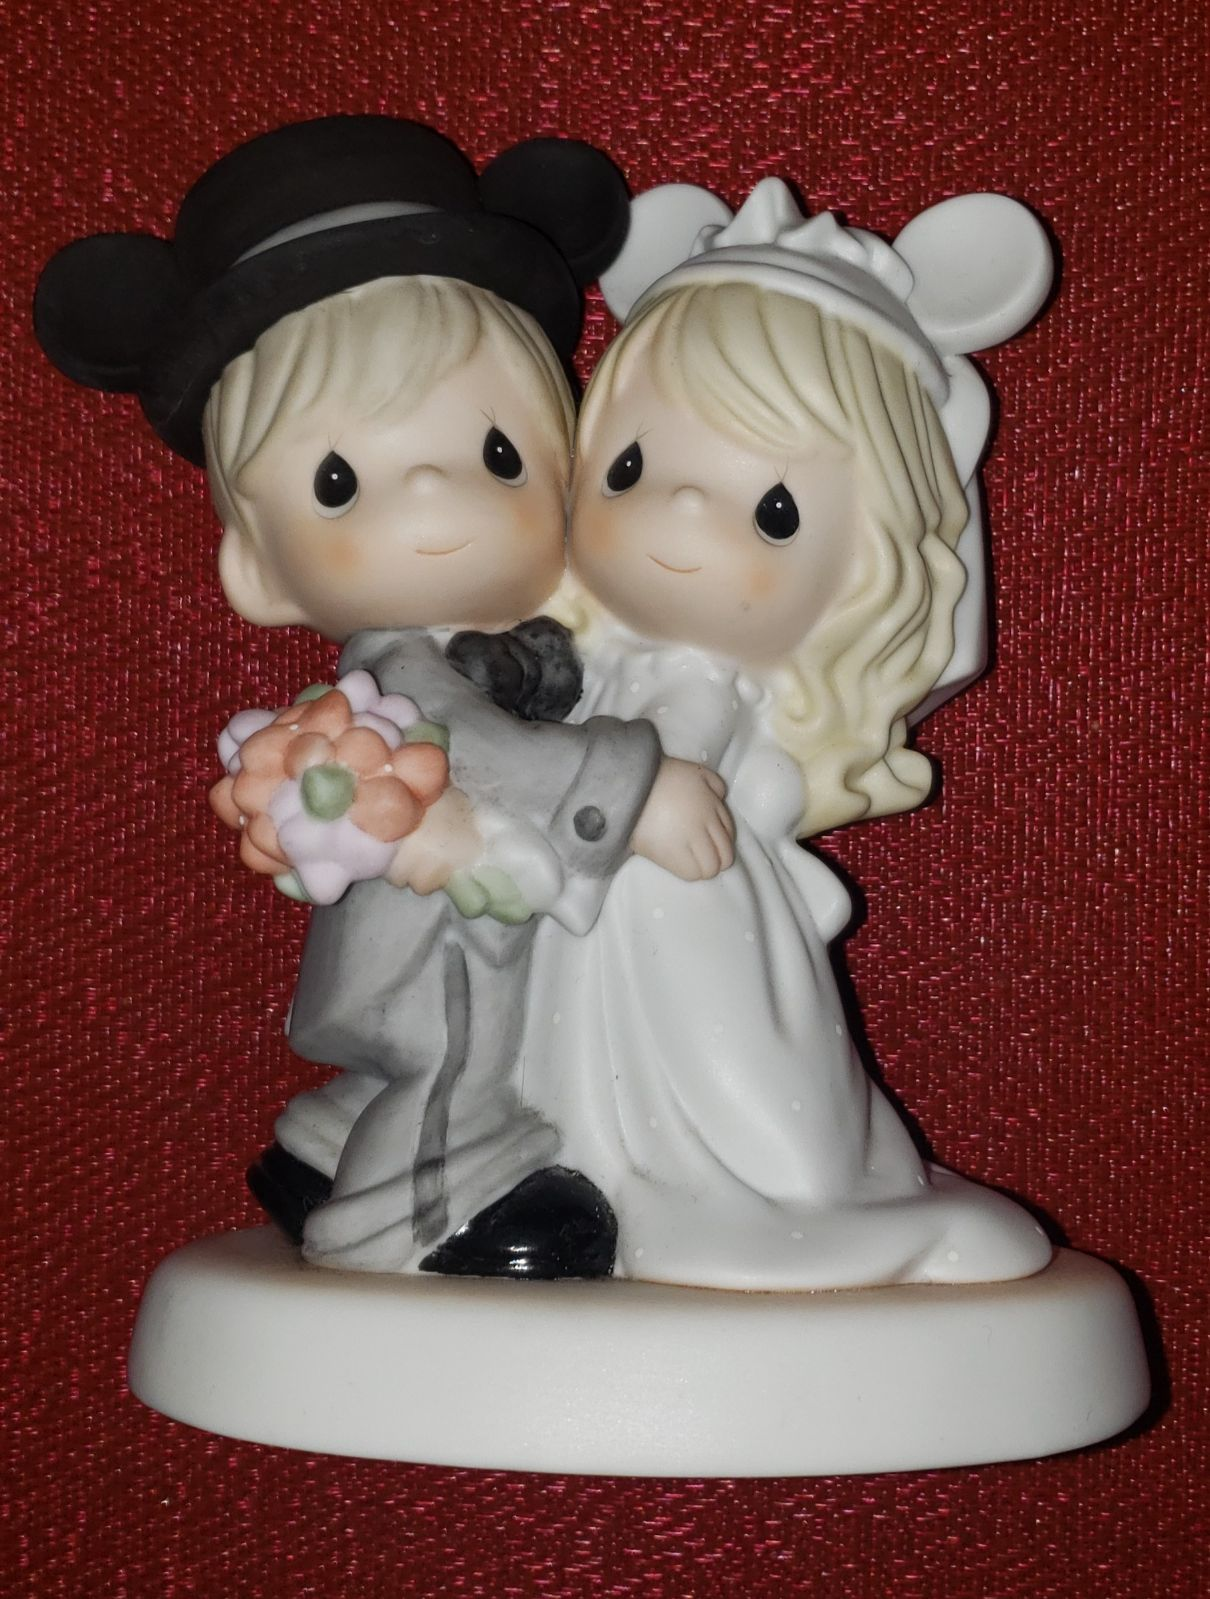 Disney Precious Moments wedding figurine